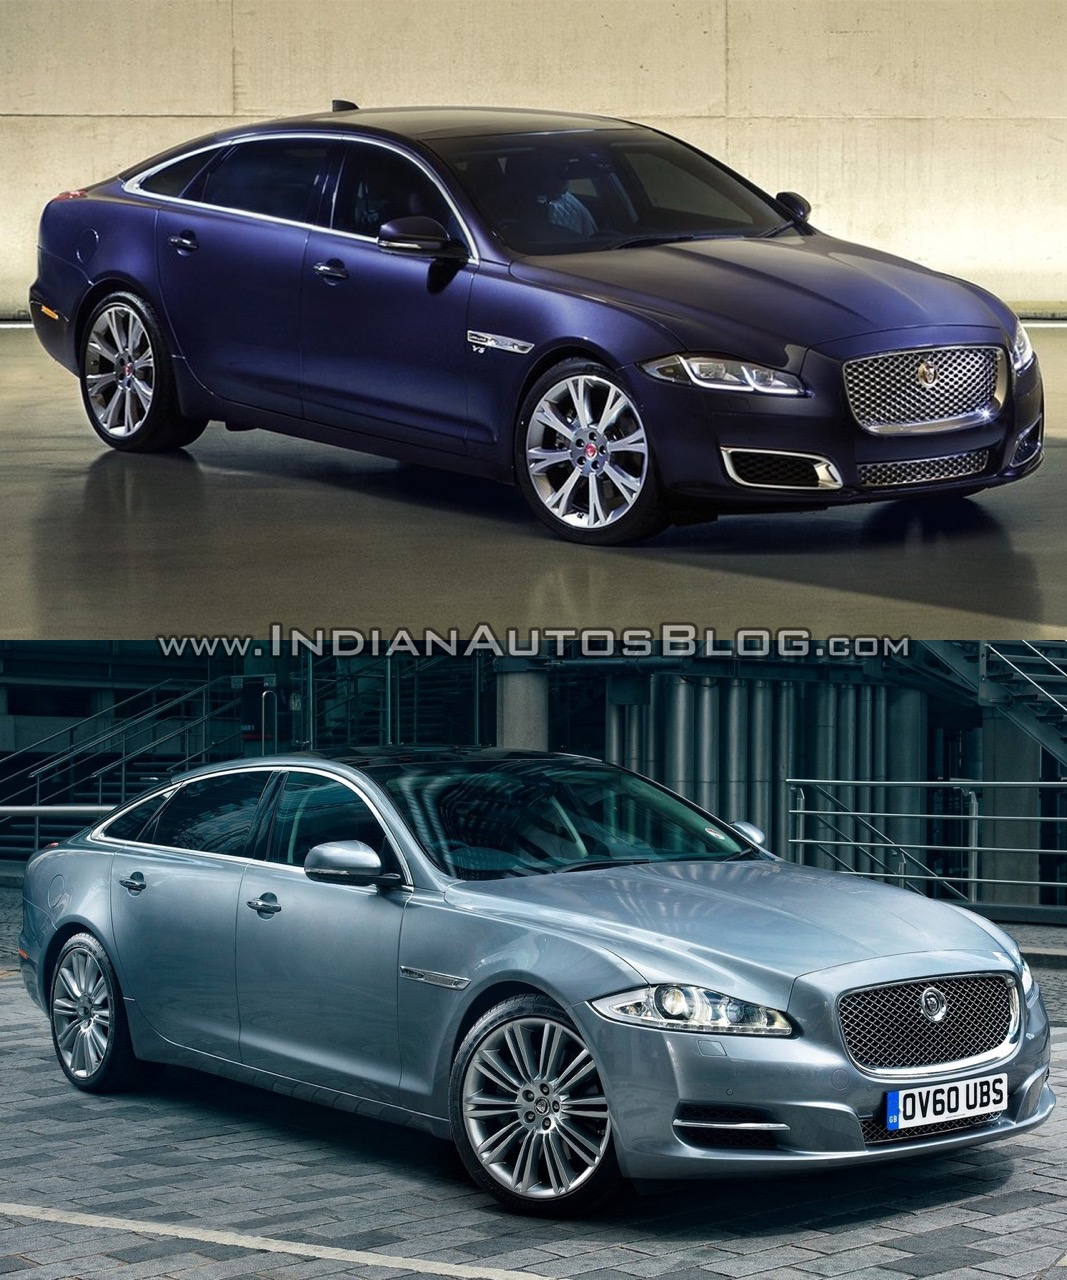 2016 Jaguar XJ vs 2014 Jaguar XJ - Old vs New